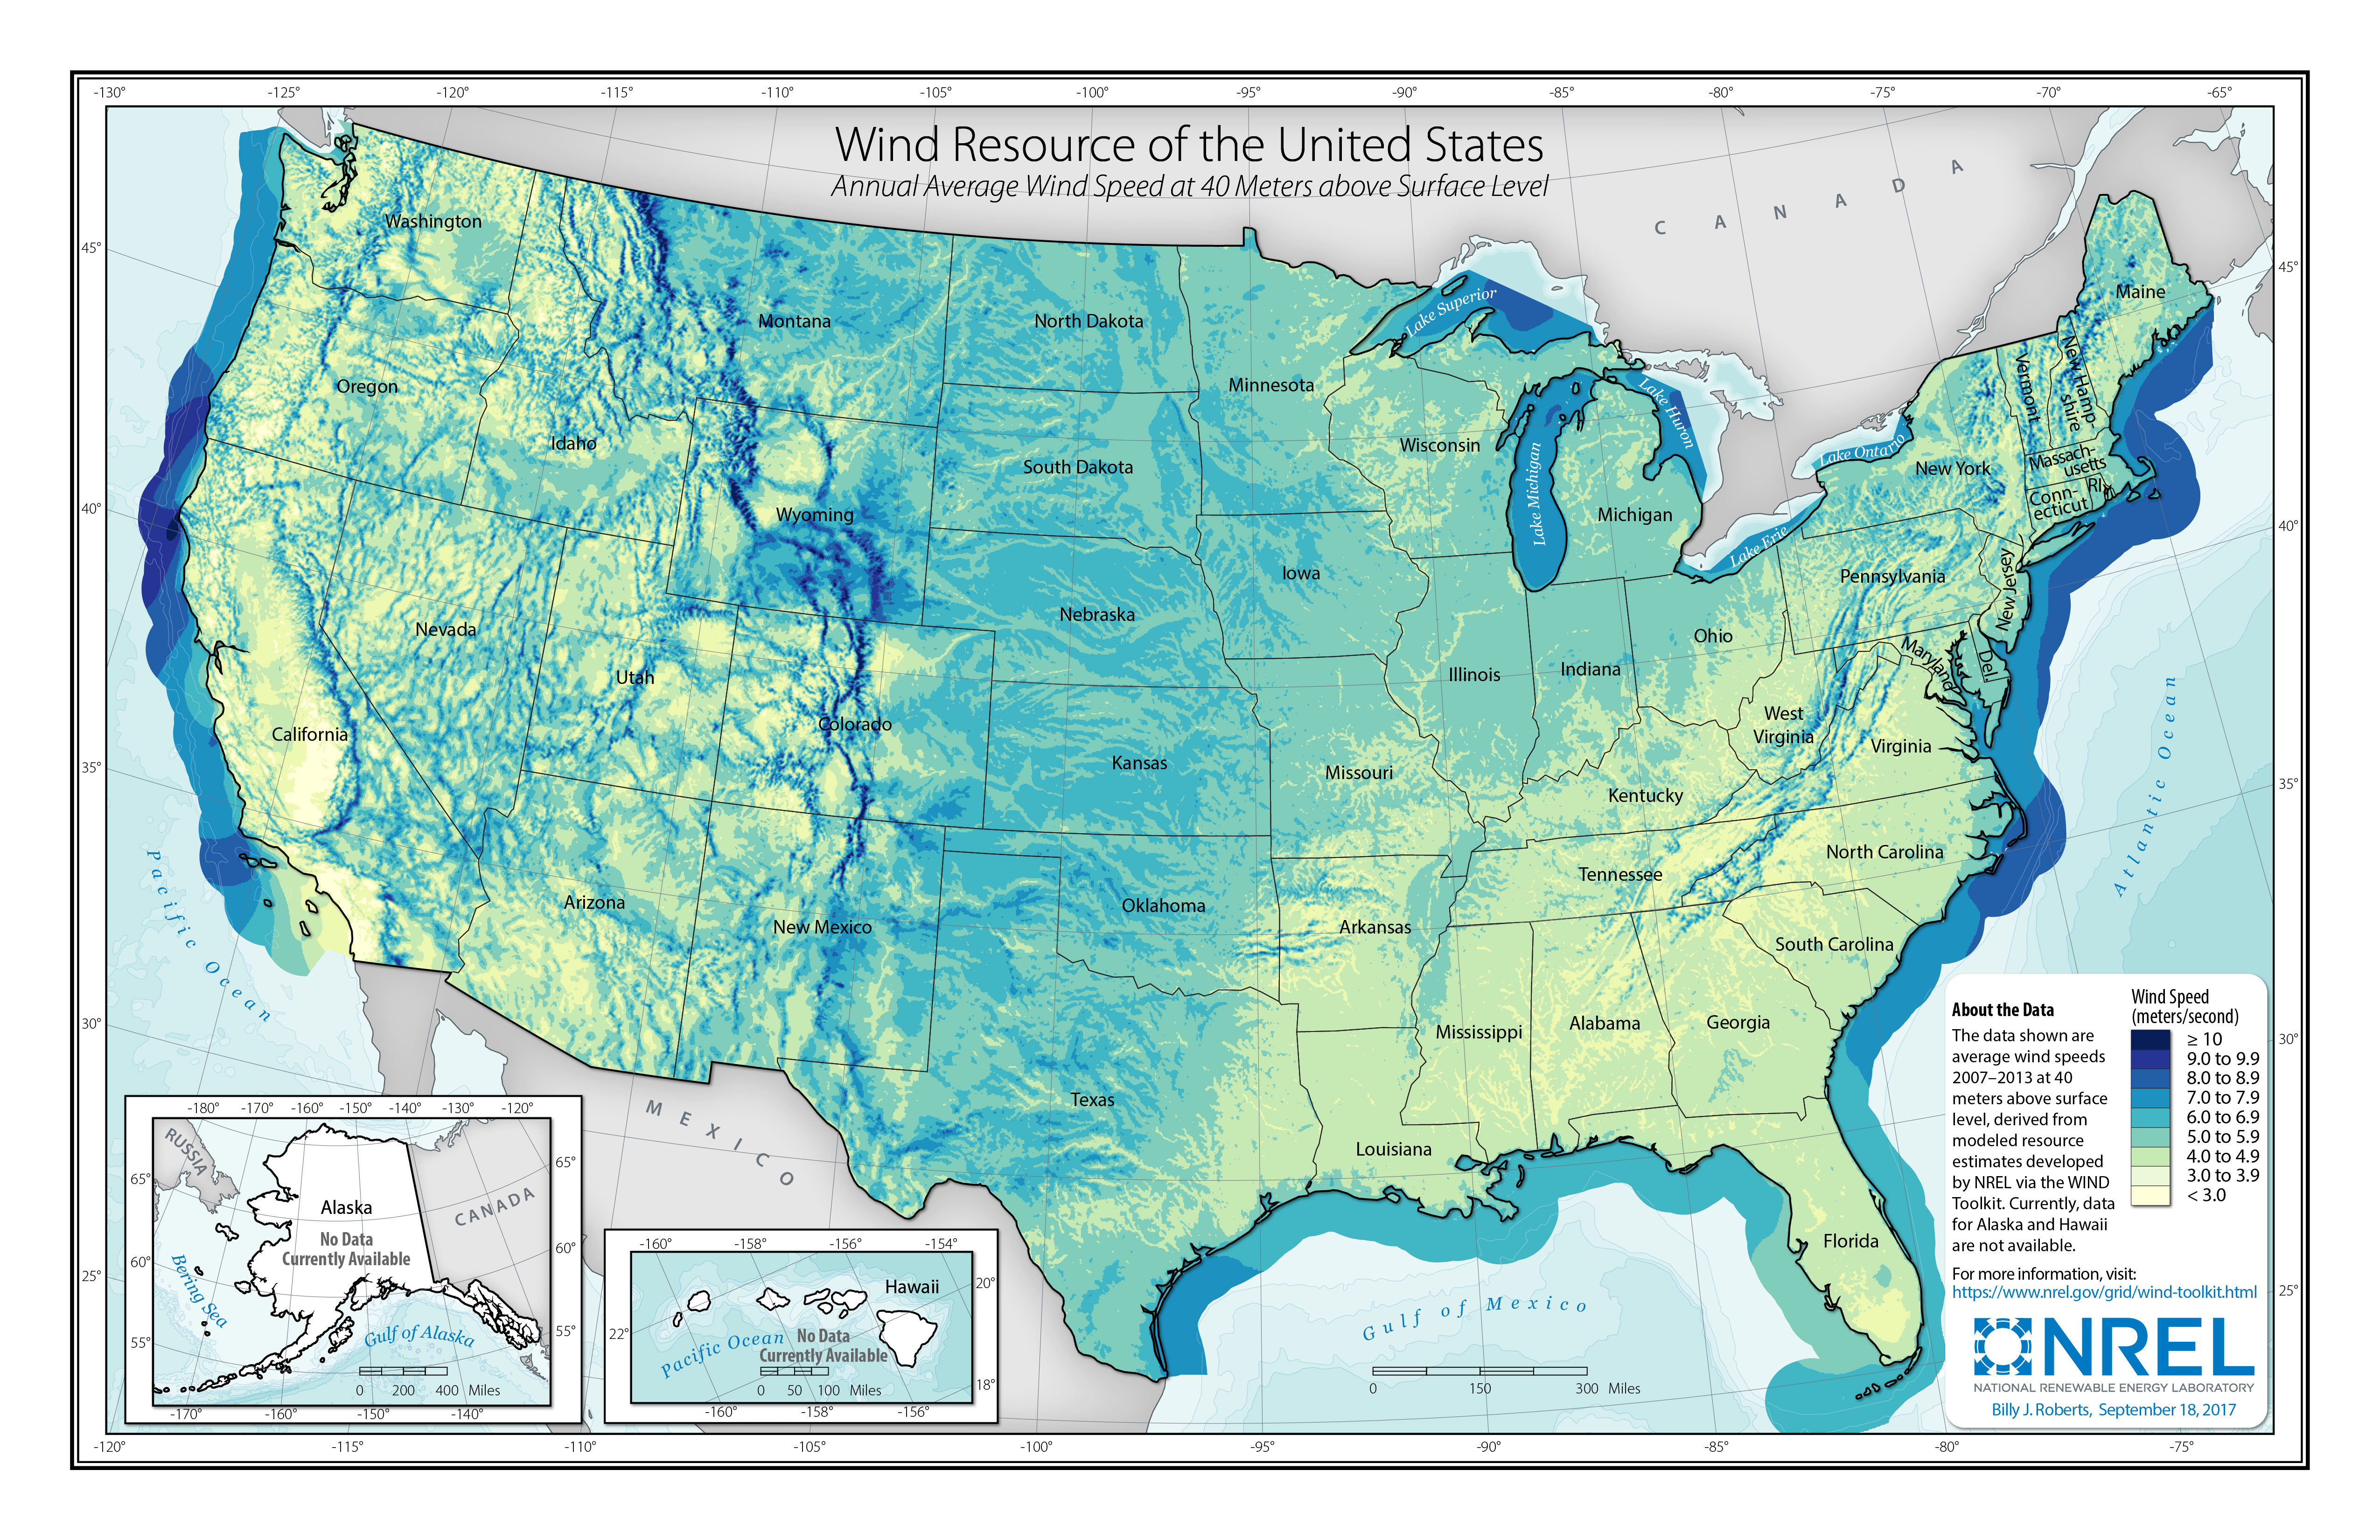 Us Wind Resource Map Wind Resource Data, Tools, and Maps | Geospatial Data Science | NREL